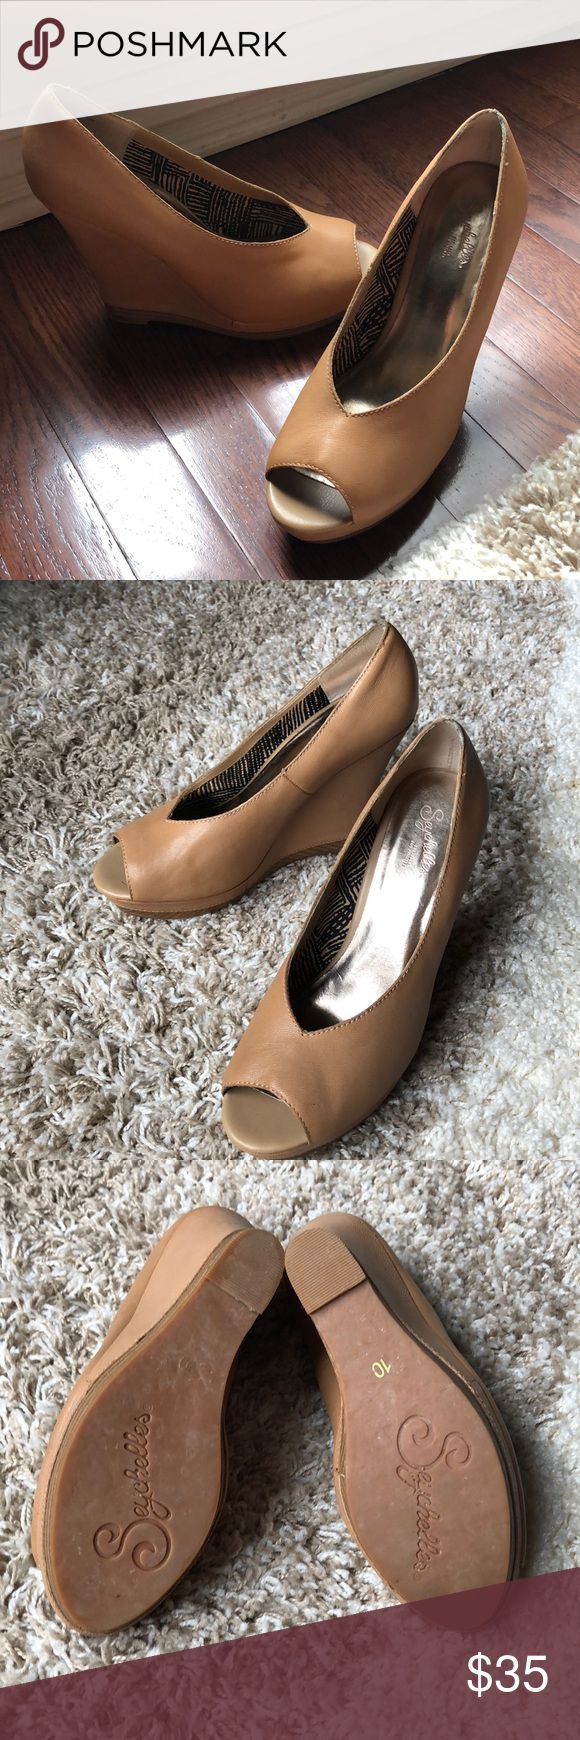 Seychelles Nude Wedge Super comfy Wedge peep toe in Excellent Used a Condition - small scuff on the back right shoe  (see picture)  No toe scuffs and soles in great condition. Worn just a handful of times. Seychelles Shoes Wedges